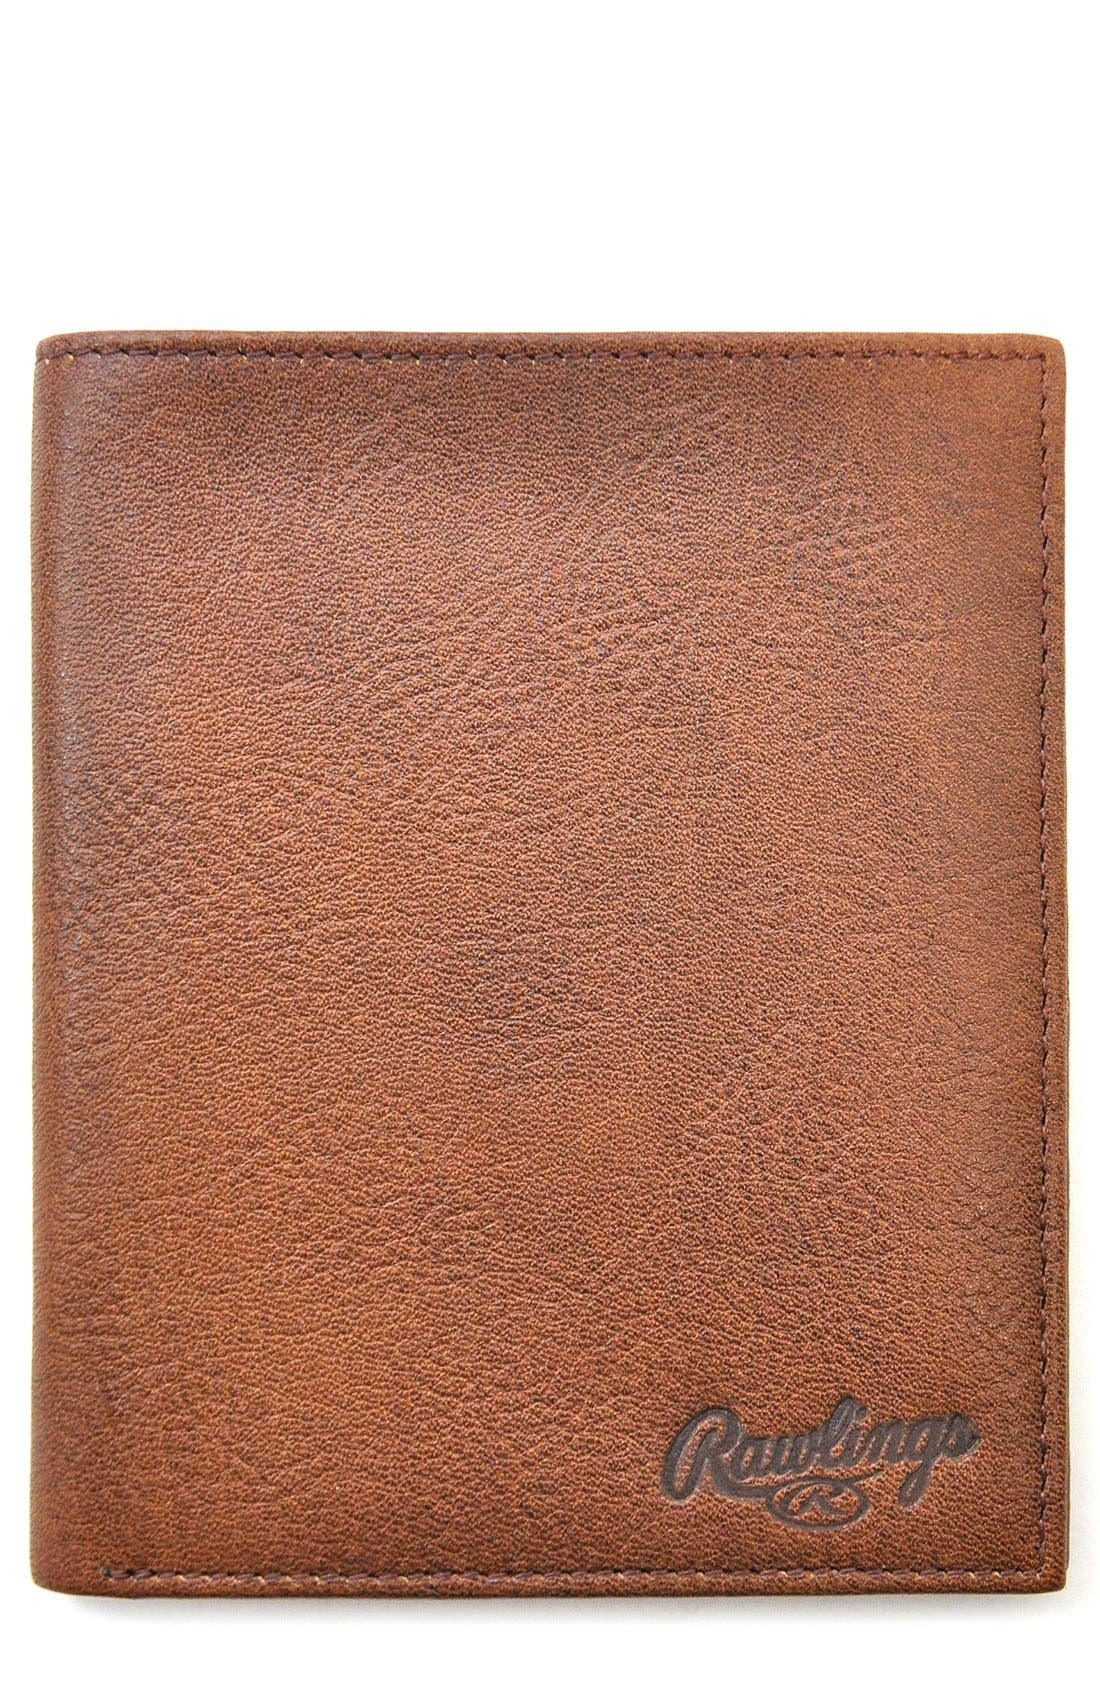 Rawlings® Triple Play Leather Executive Wallet